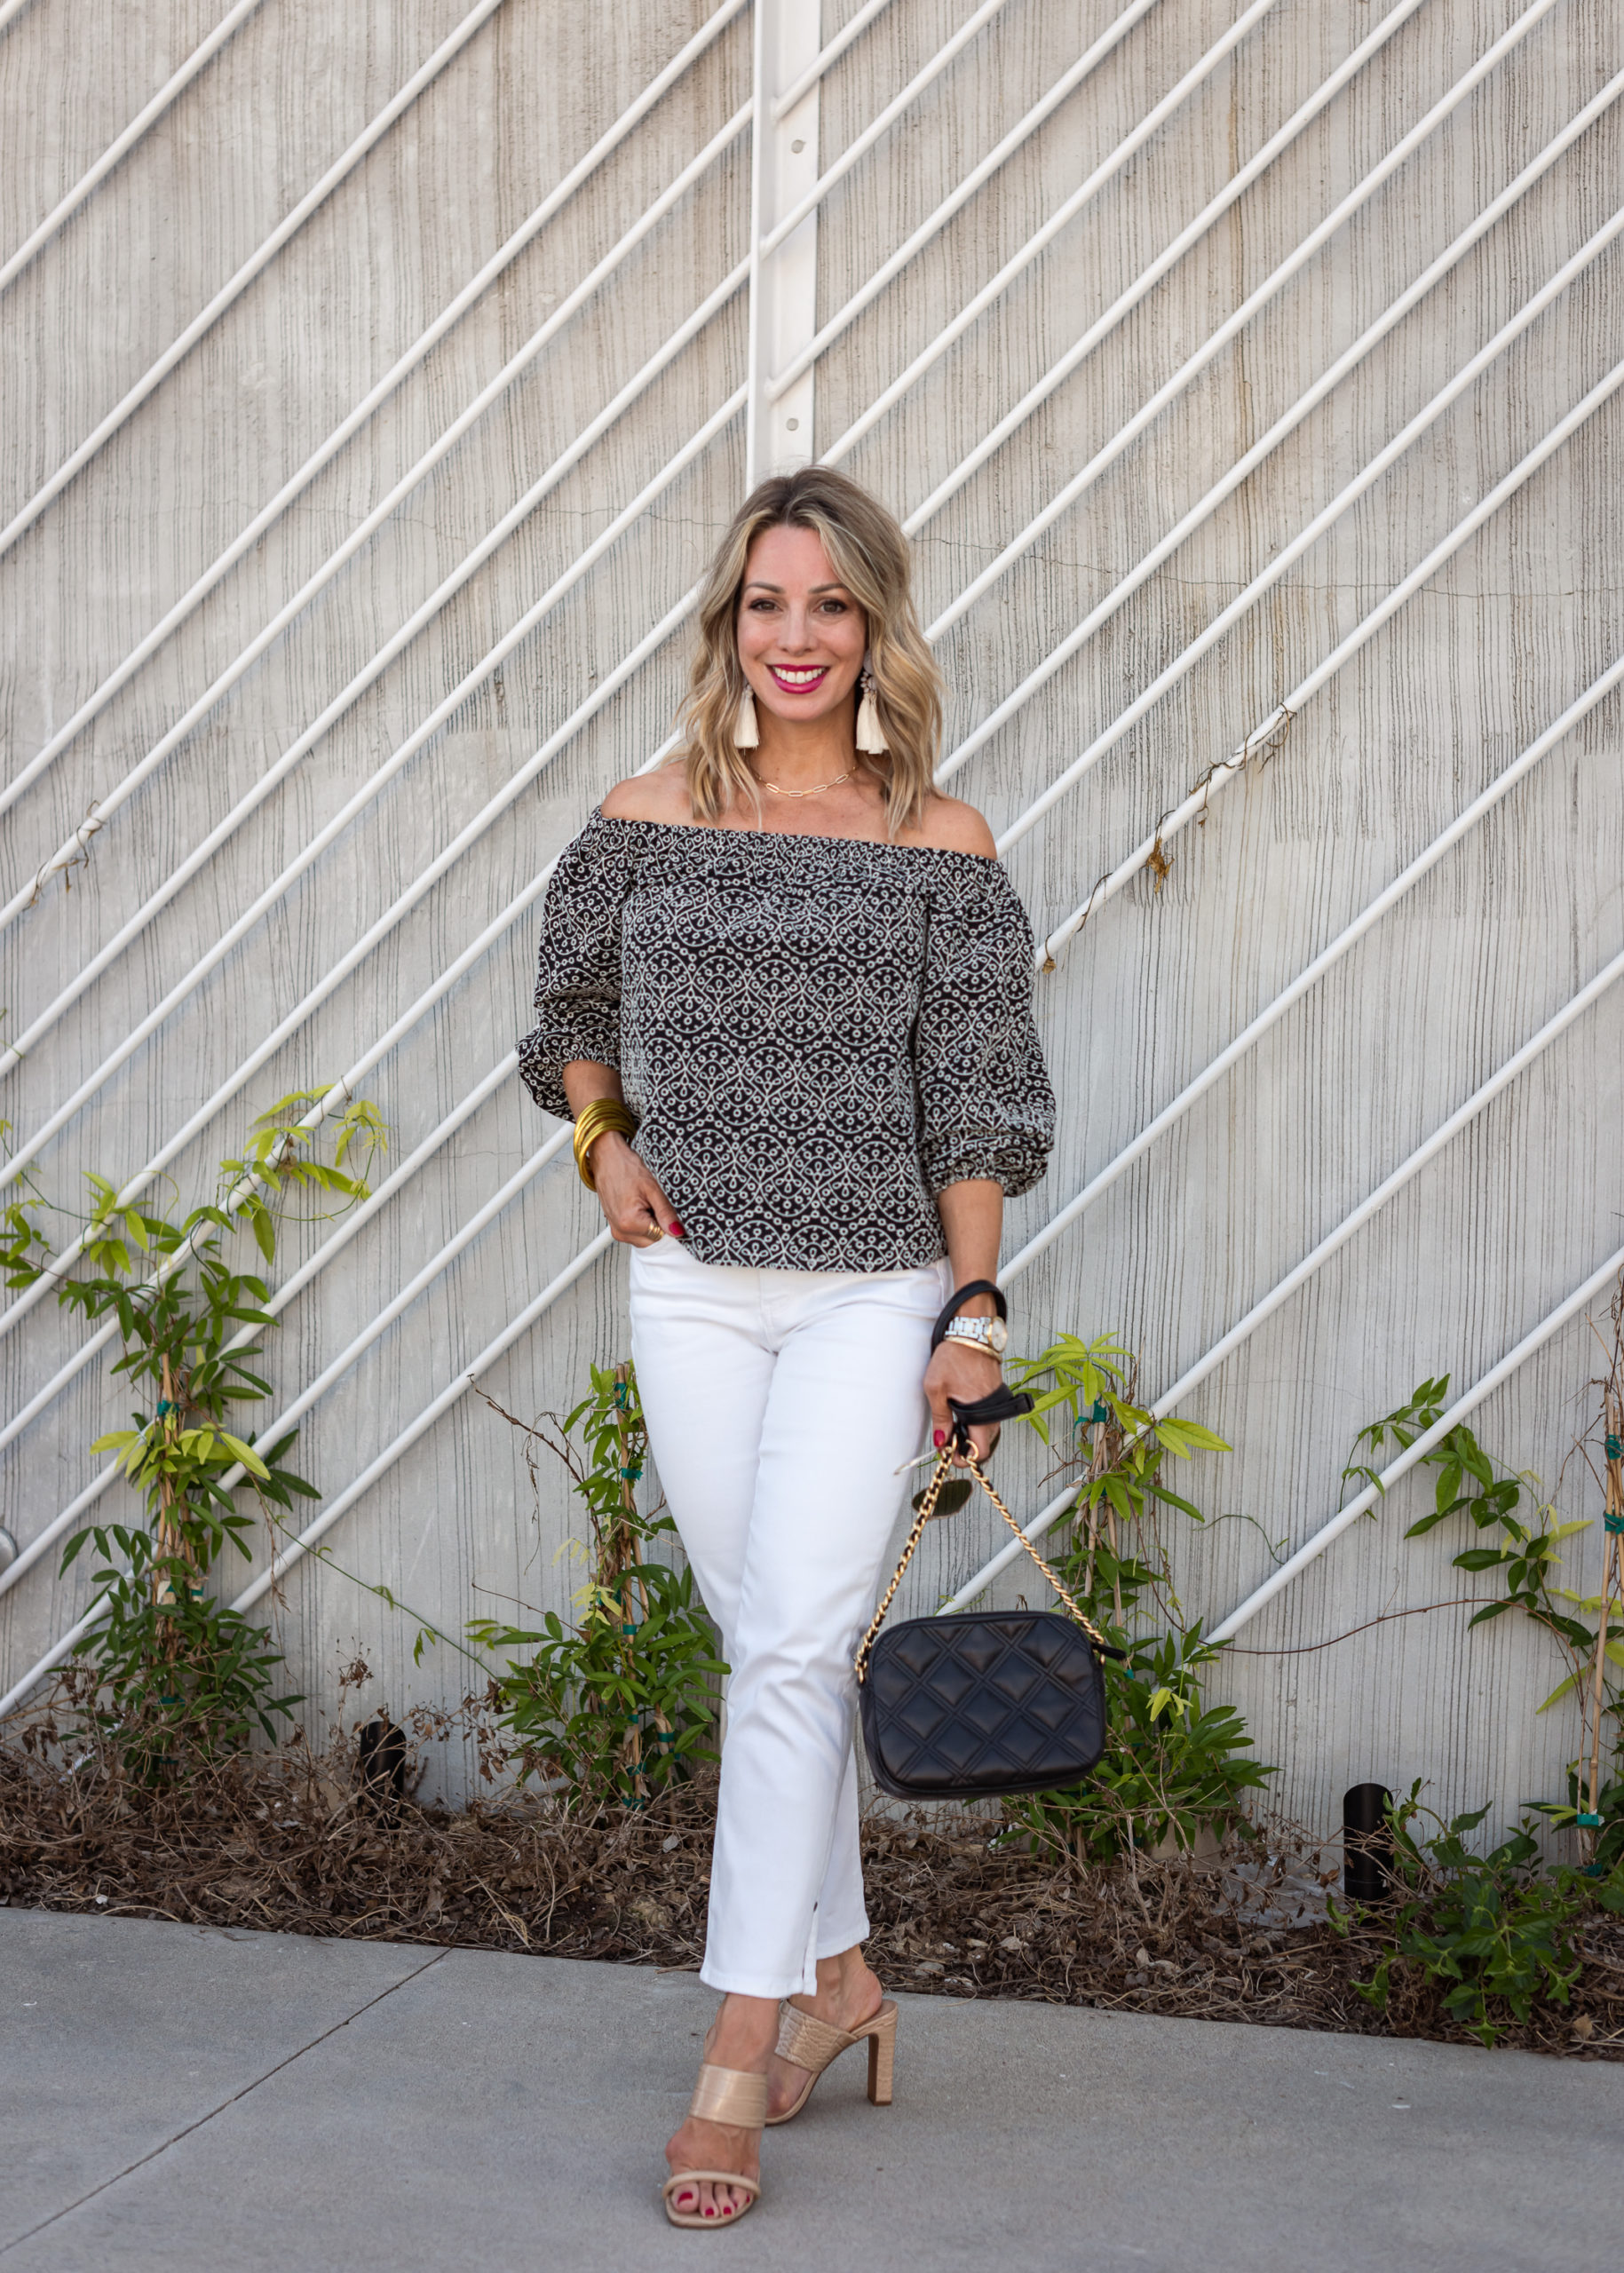 Off the Shoulder Top and White Jeans with Sandals and Crossbody Bag